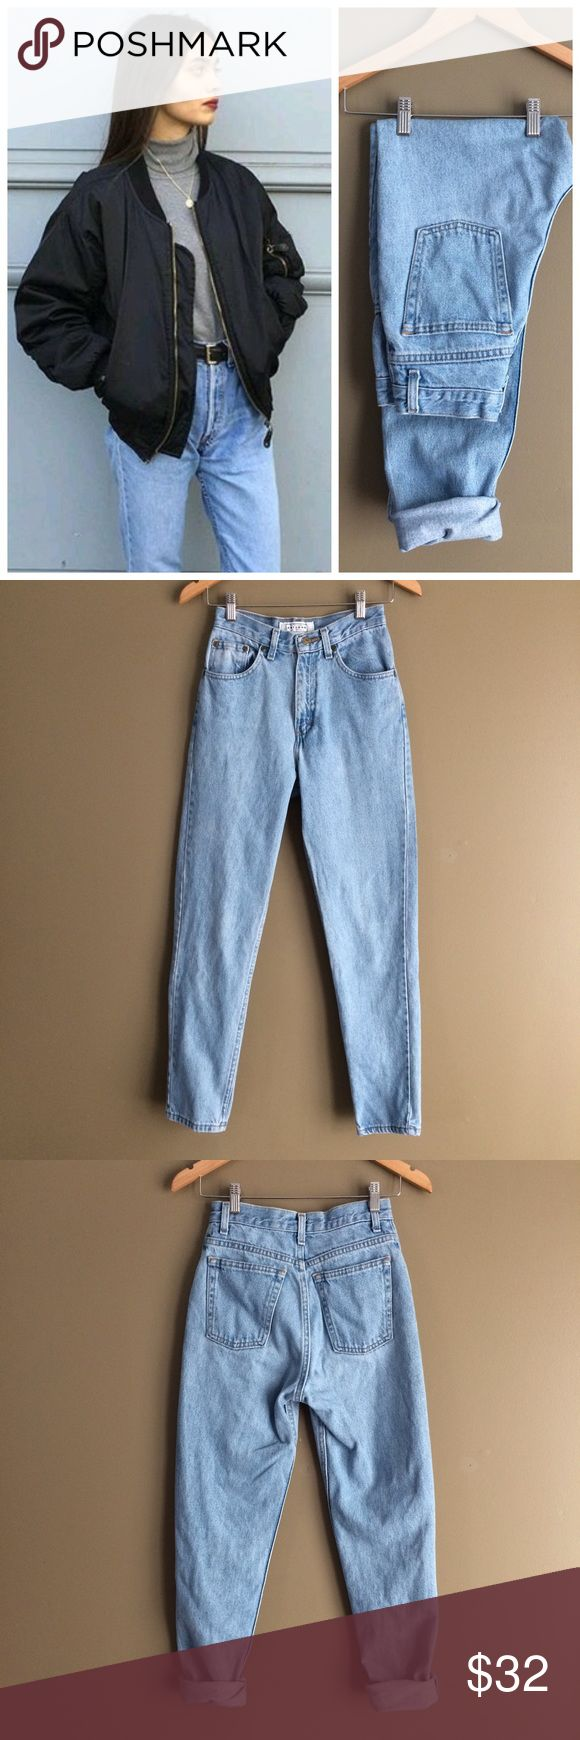 """Vintage high waisted mom jeans For sale is a pair of high waisted mom jeans. Made by Arizona and light blue wash.  Size tag is so faded I cannot read it so PLEASE refer to measurements to ensure proper fit! Jeans are in great condition.  Tapered style. Measurements are:  12.5"""" waist, 16.5"""" hips, 11"""" rise, 29"""" inseam, 5.5"""" leg opening and 39.5"""" length.  Always open to offers. Thanks for looking! . *Model not wearing actual jeans for sale.  Inspiration only. Arizona Jean Company Jeans"""